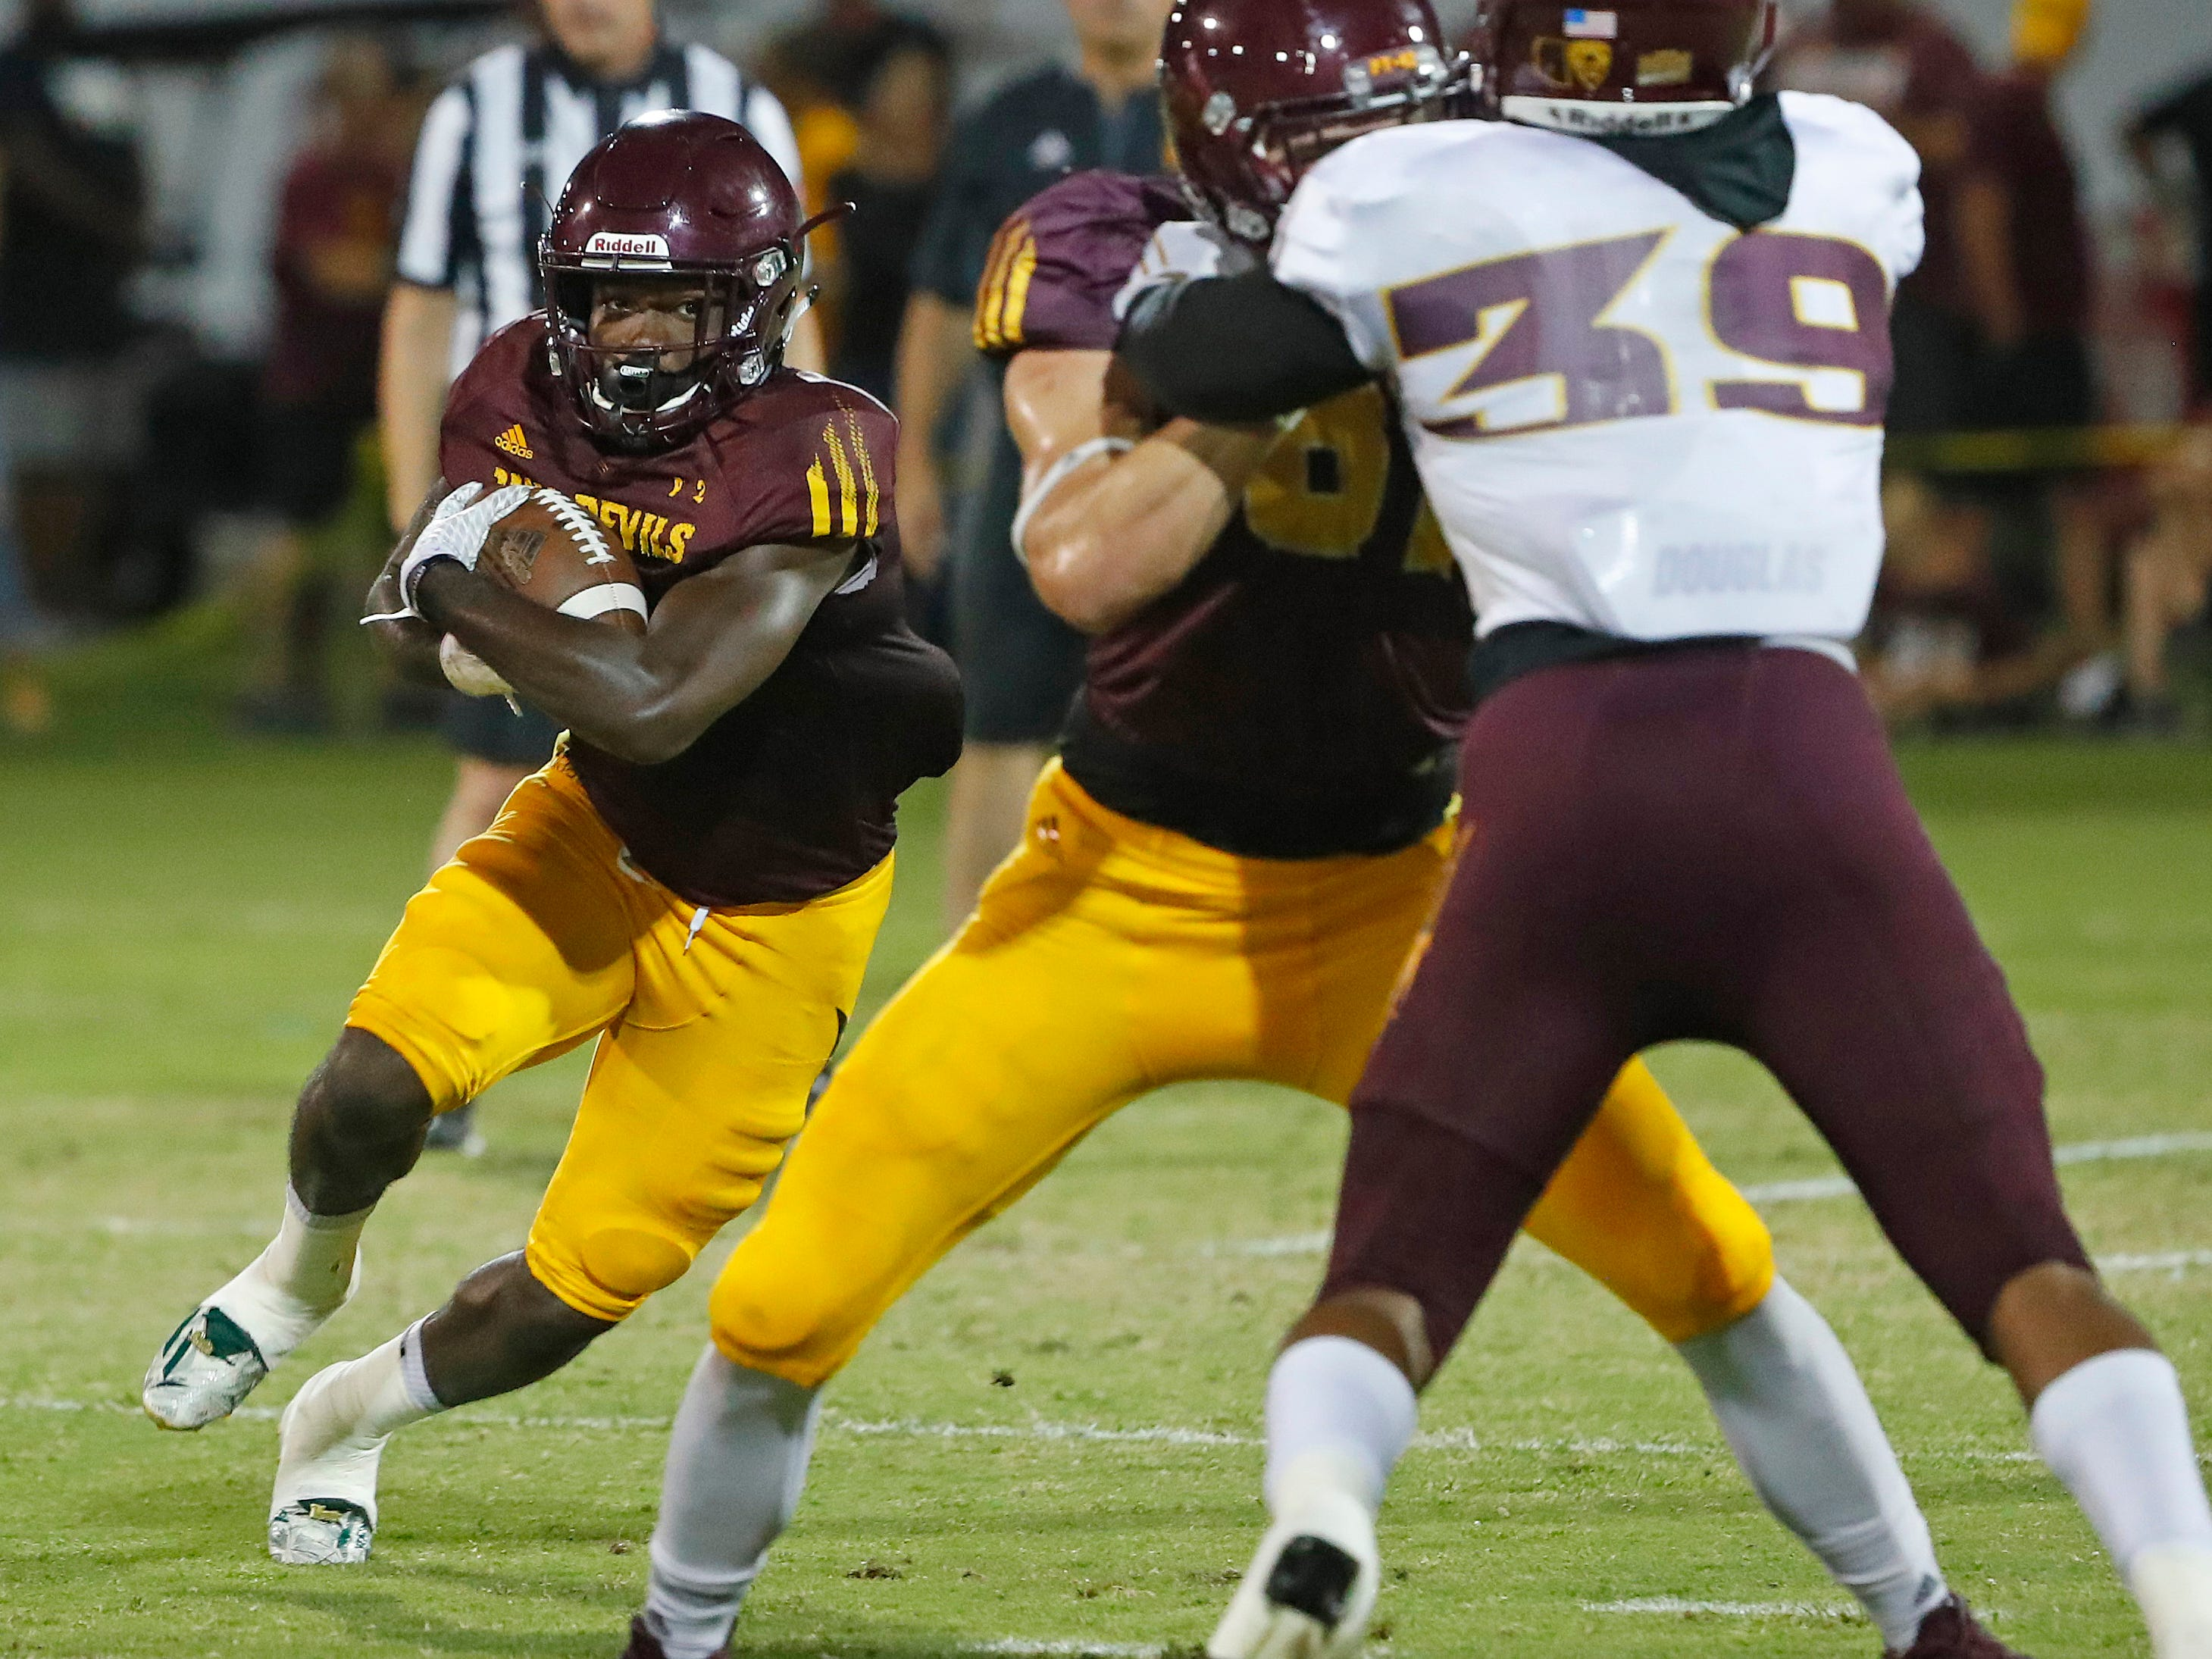 ASU's Eno Benjamin (3) runs against the defense during the ASU scrimmage at Kajikawa Practice Fields in Tempe, Ariz. on Aug. 11, 2018.